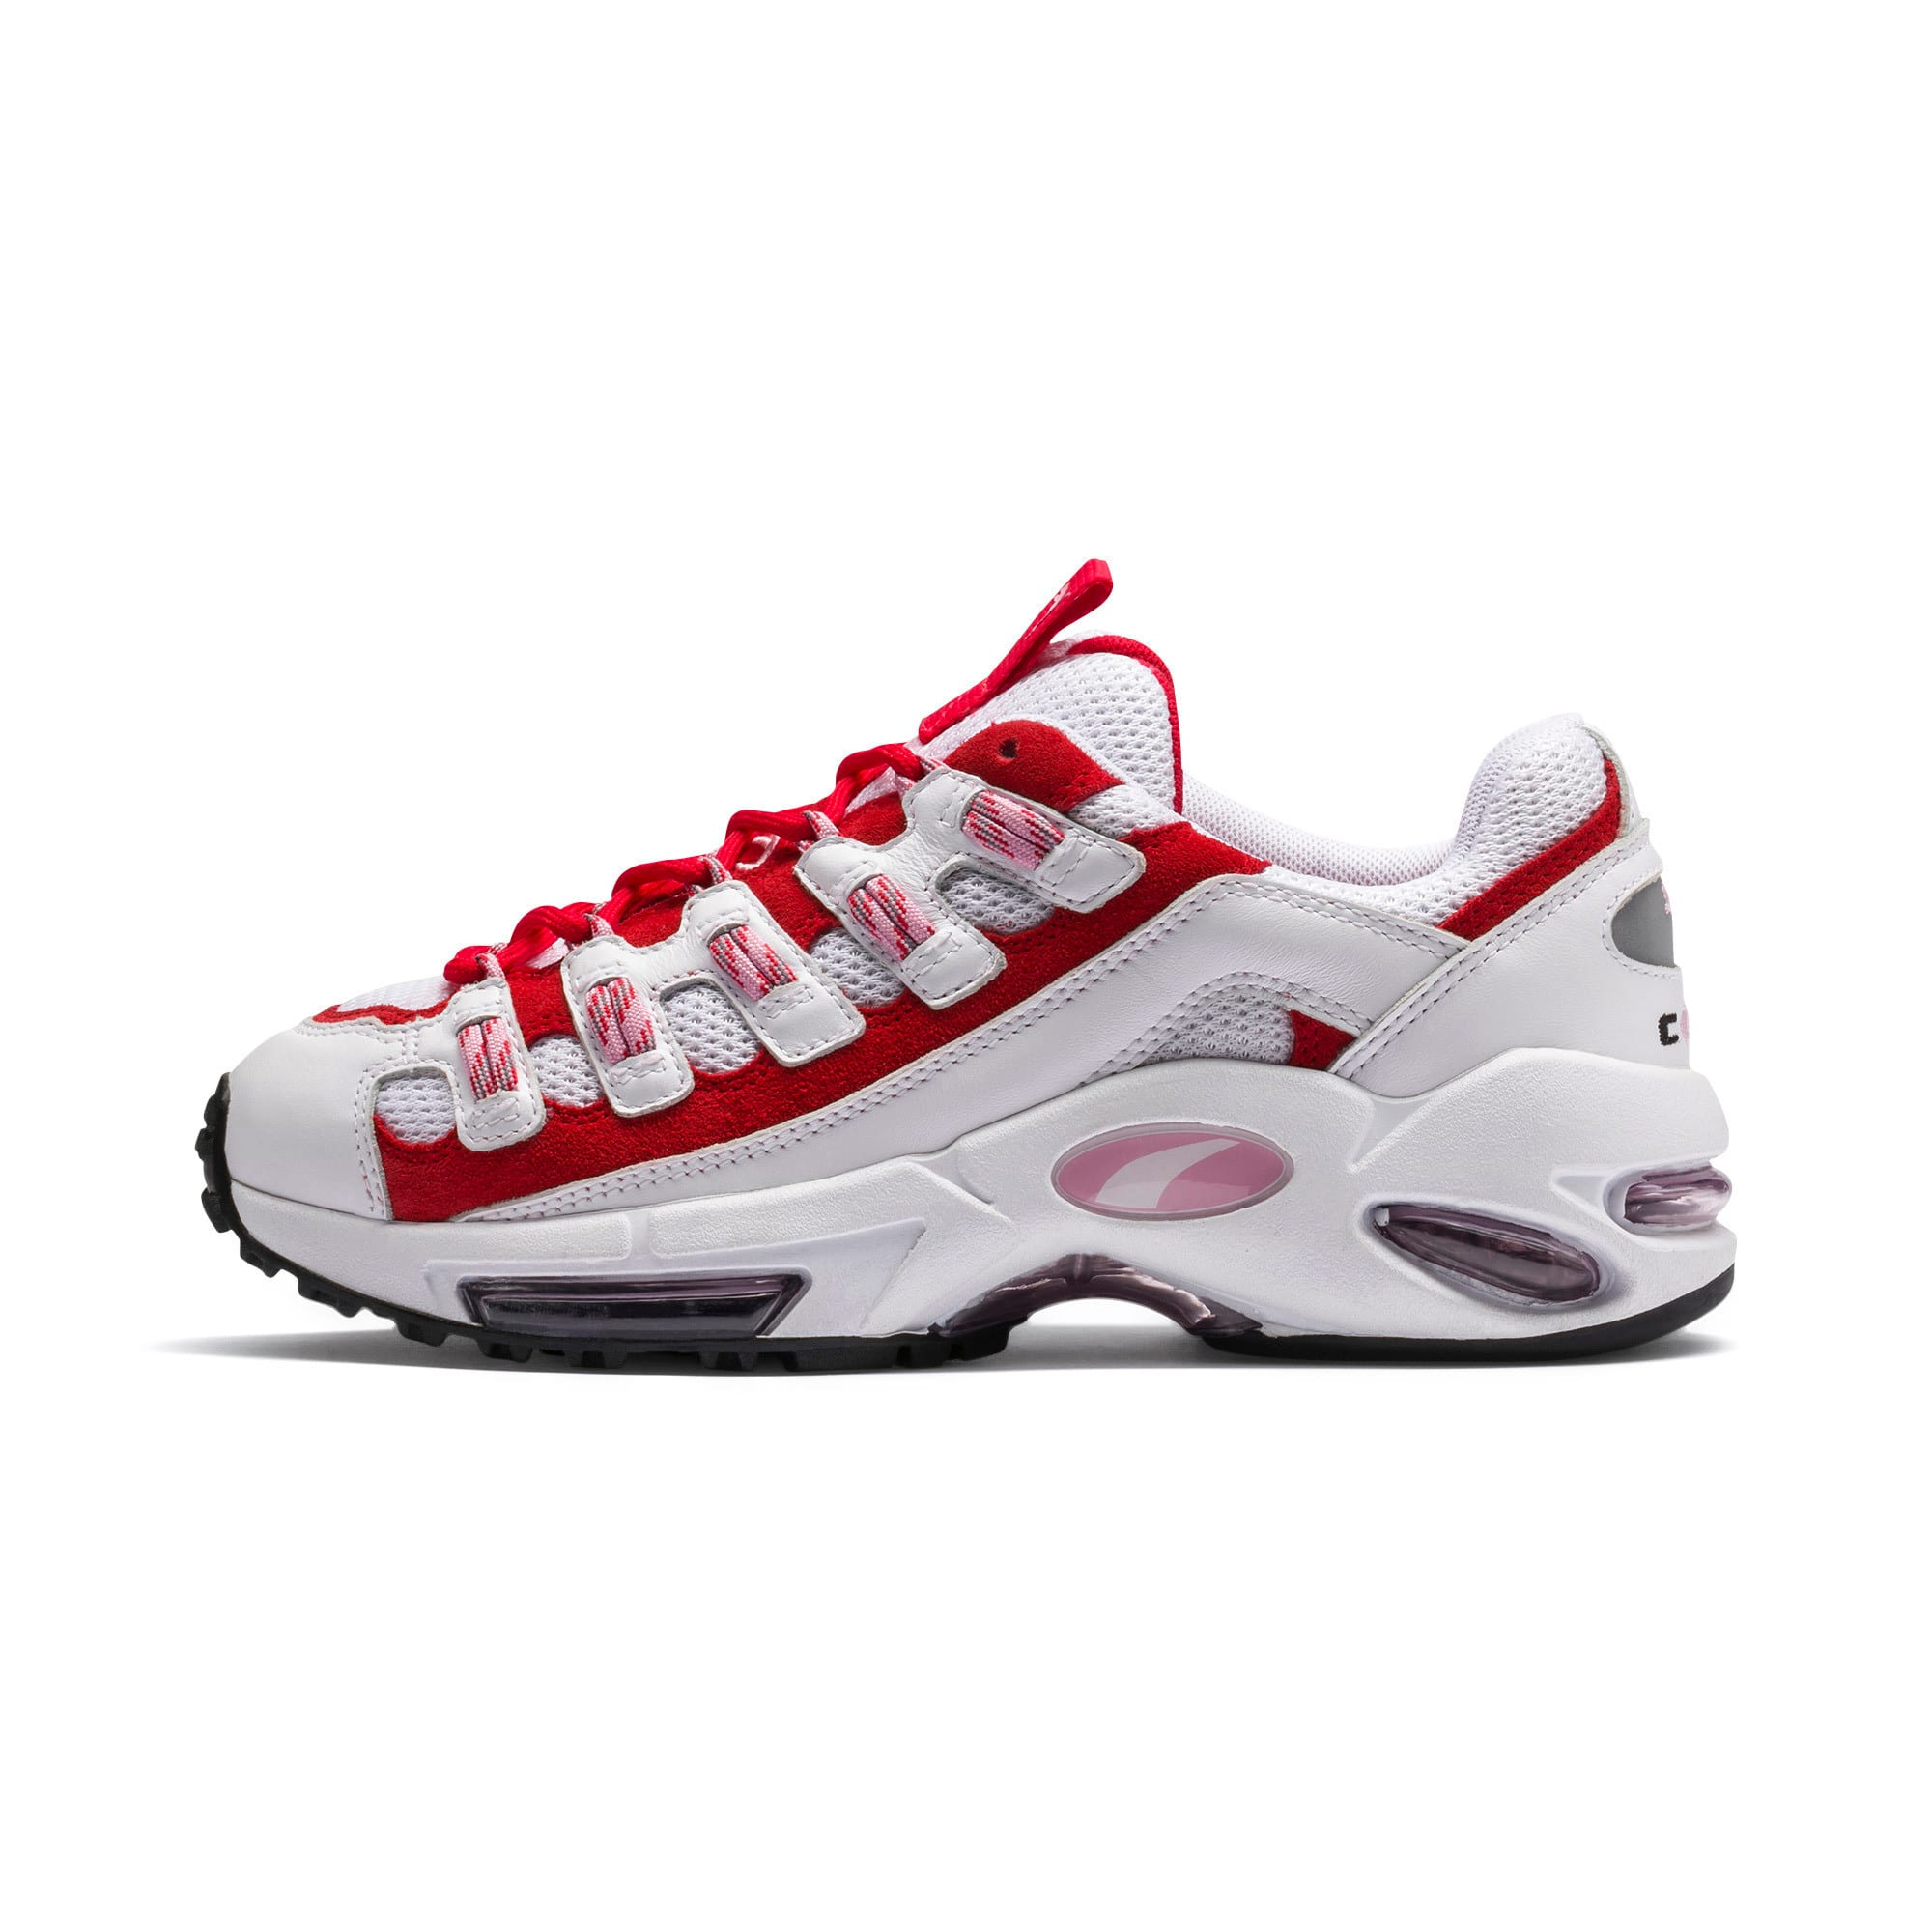 Thumbnail 1 of Cell Endura sneakers, Puma White-Hibiscus, medium